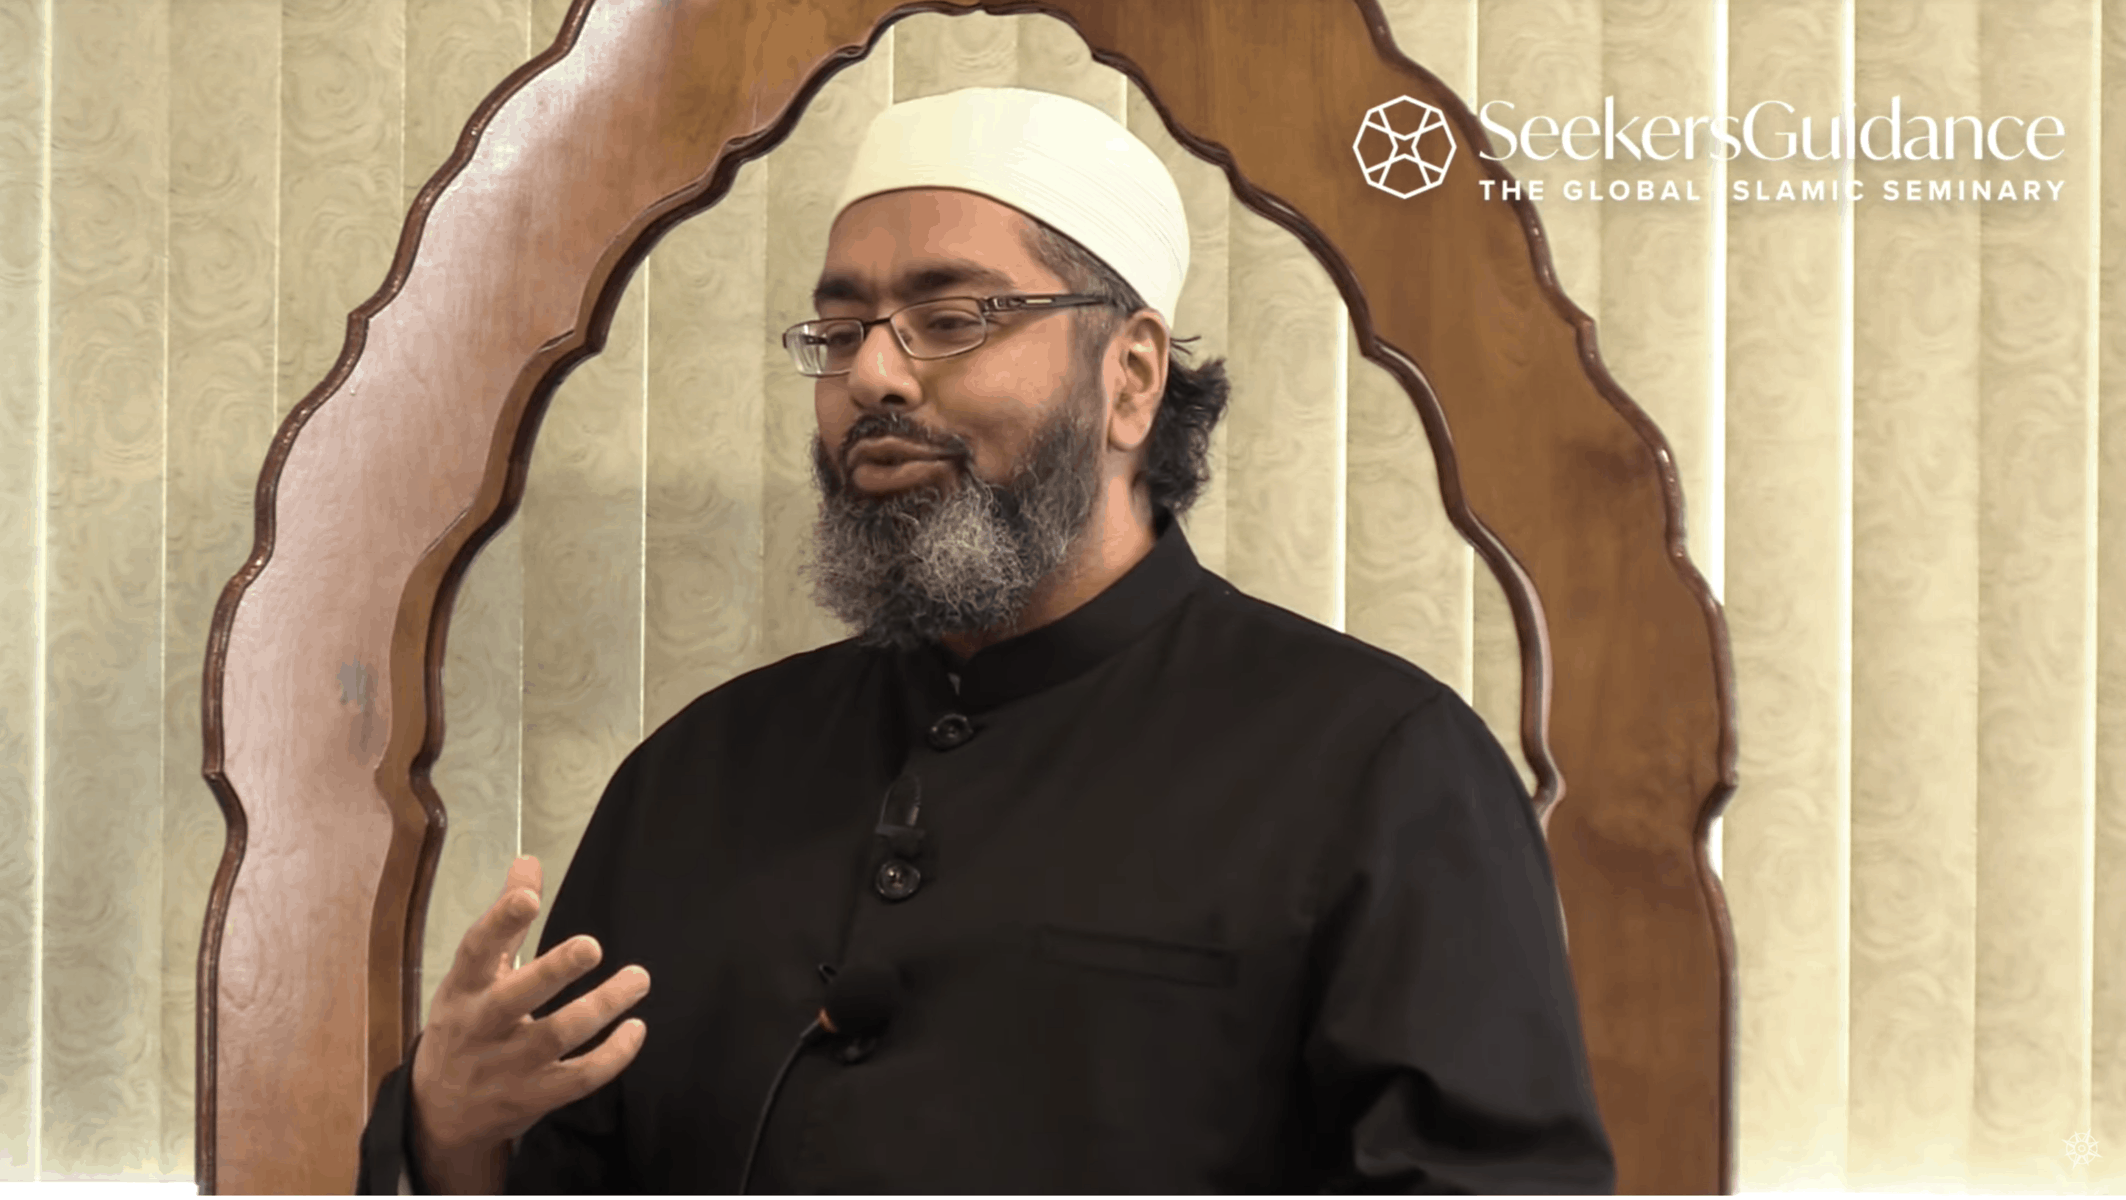 Faraz Rabbani – Reconnecting with the Quran in Ramadan